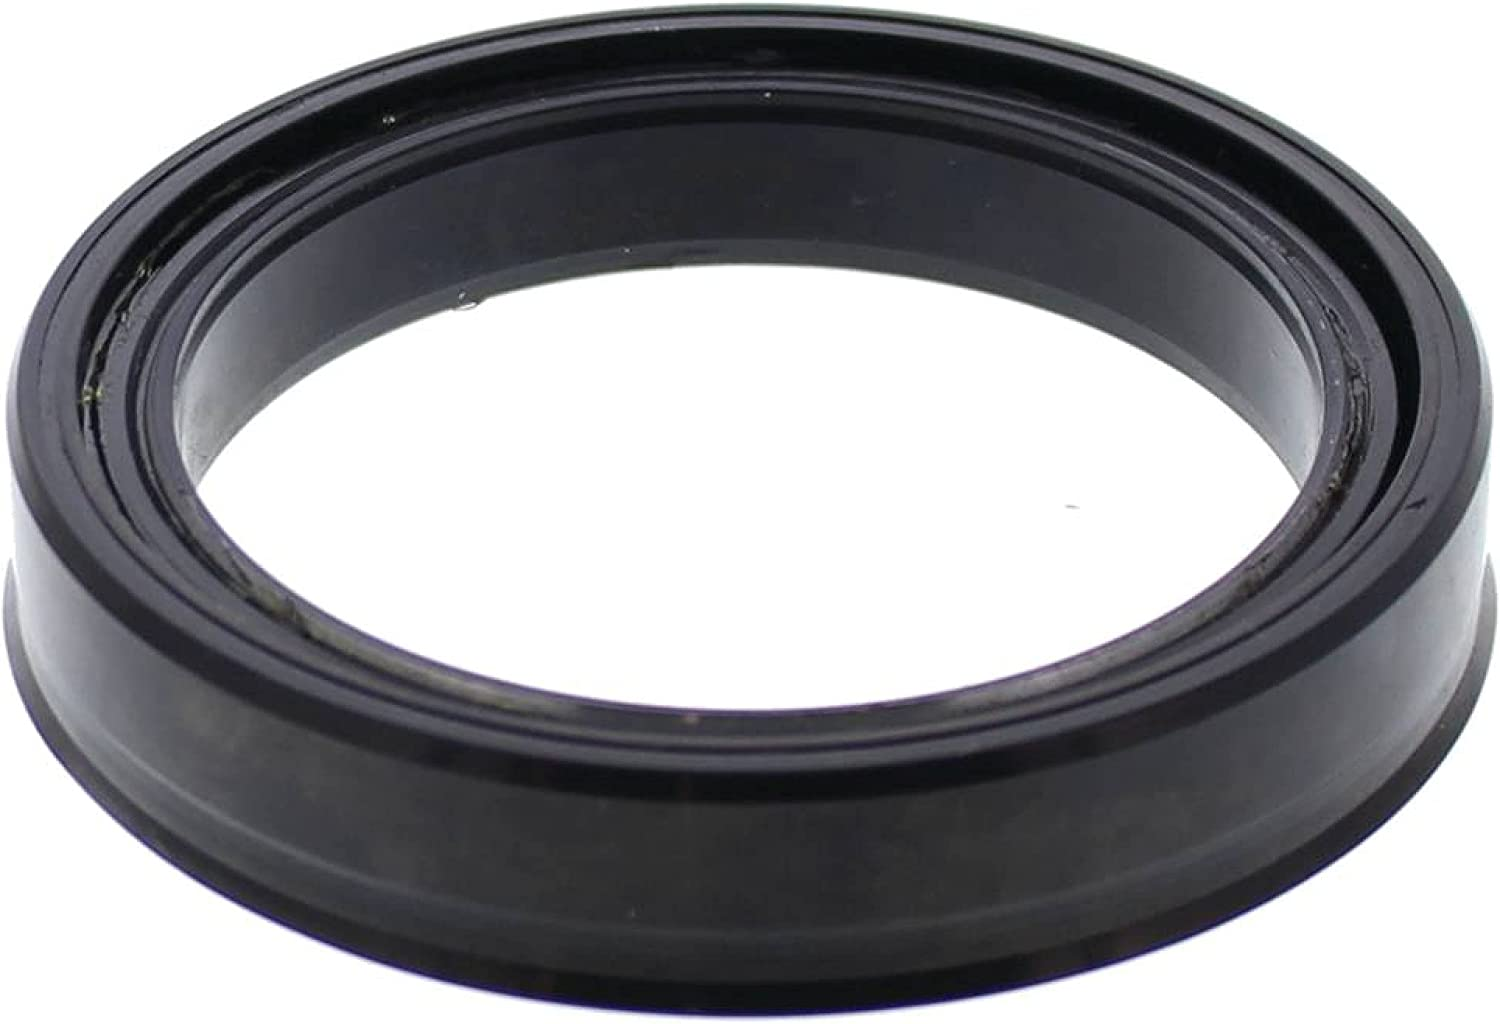 Japan's largest assortment Complete Tractor New 3021-0003 Seal Replacement Tractors B17 For 2021 new